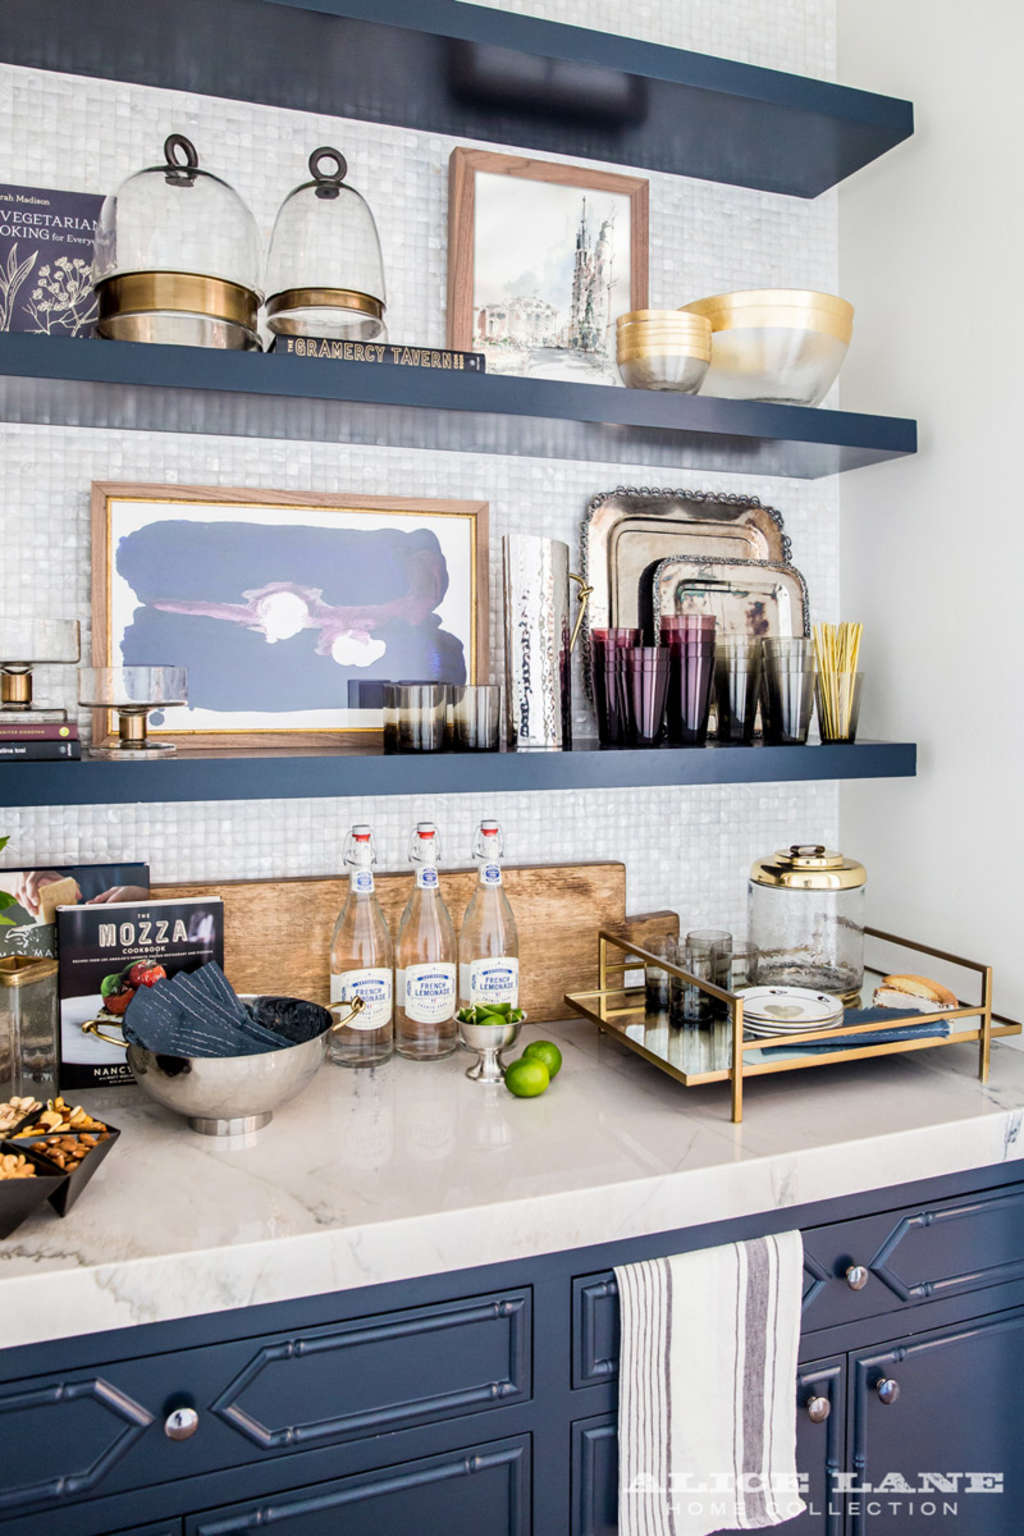 These Amazing Home Bars Are Better than Going Out